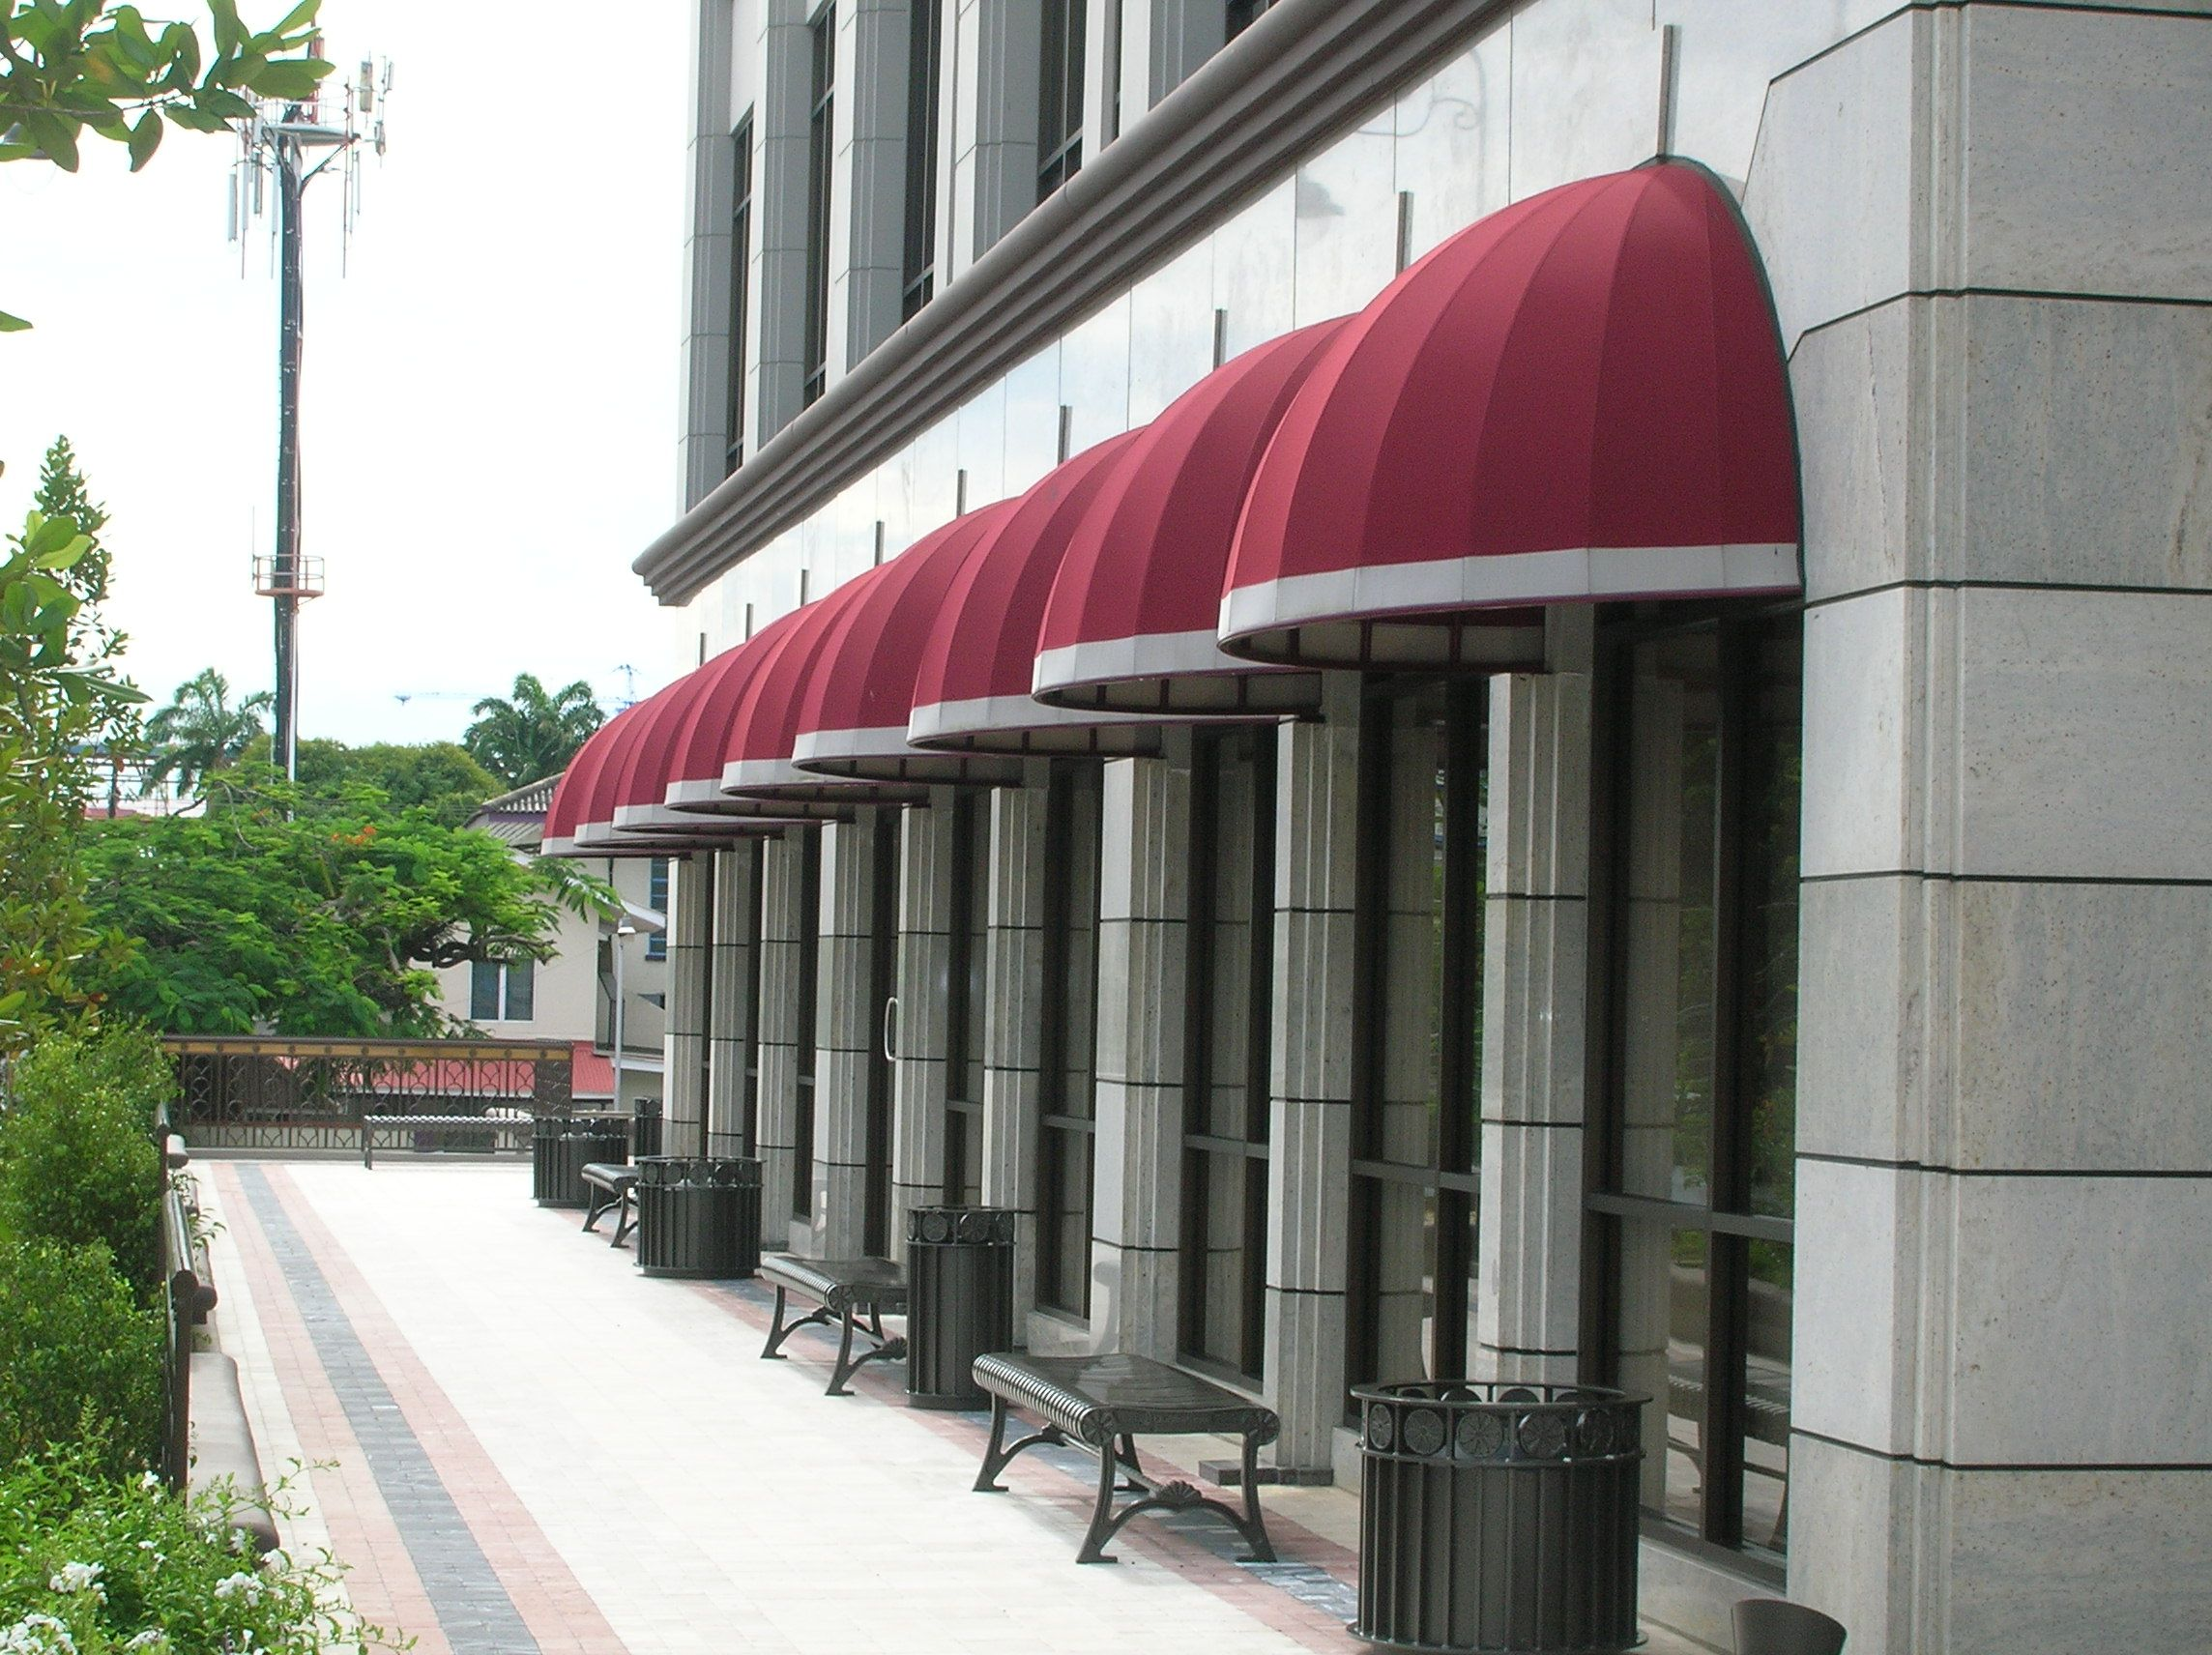 Awnings u0026 Canopies - Types and Designs & Sunbrella Awning Fabric | Dome Awning - Briar Place Trinidad ...